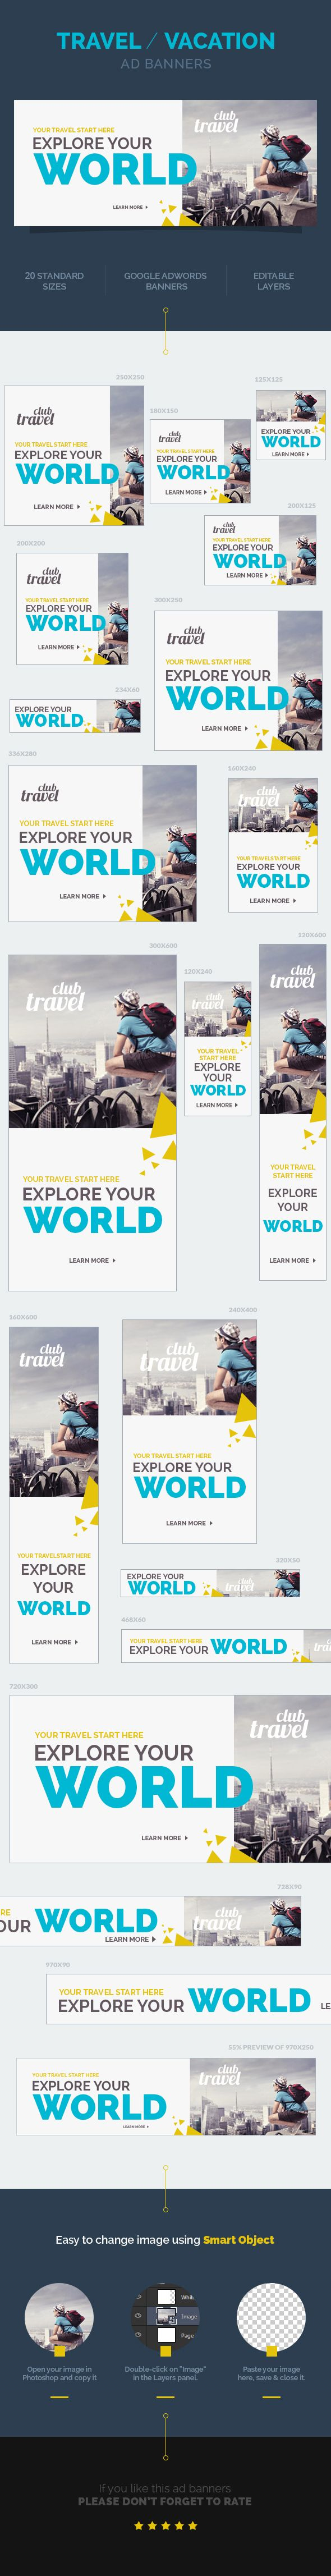 Travel / Vacation Ad Banners  A set of Travel / Vacation Ad Banners is comes with 20 standard dimensions which also meet Google adwords banners sizes. It included all the layered psd file where you can easily change its text, color & shapes as per your requirements